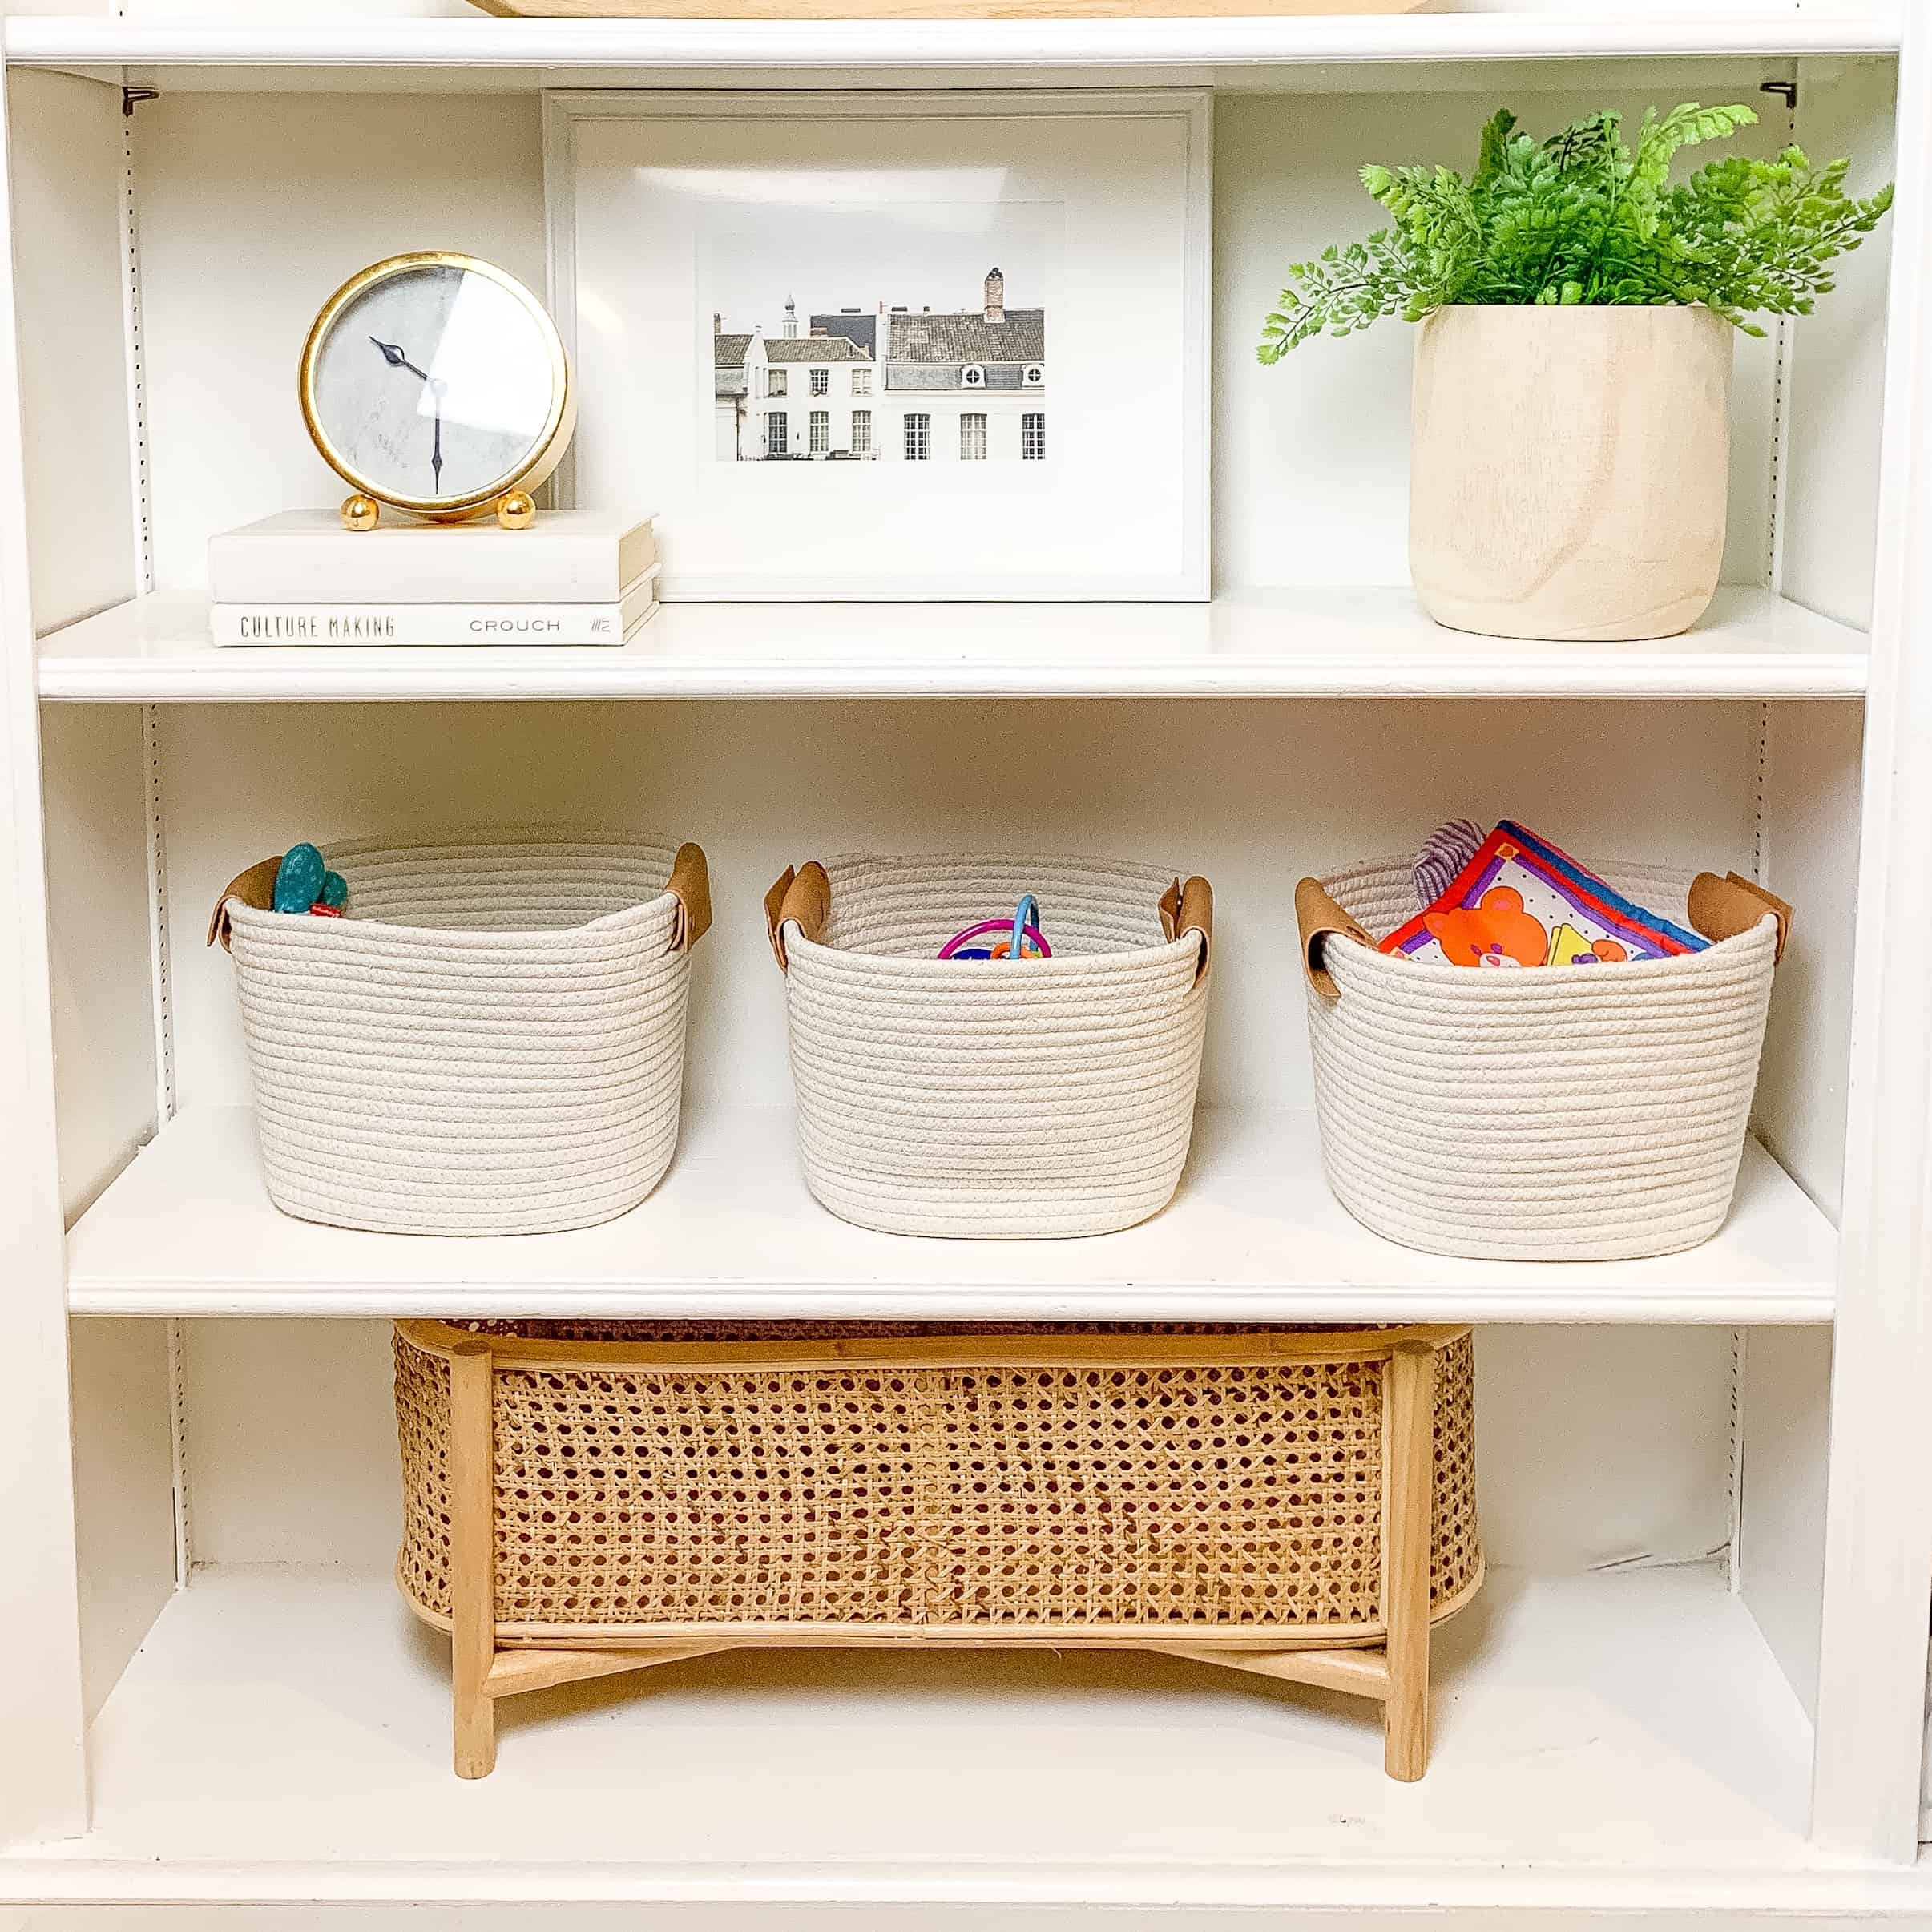 built ins with white baskets and natural decor